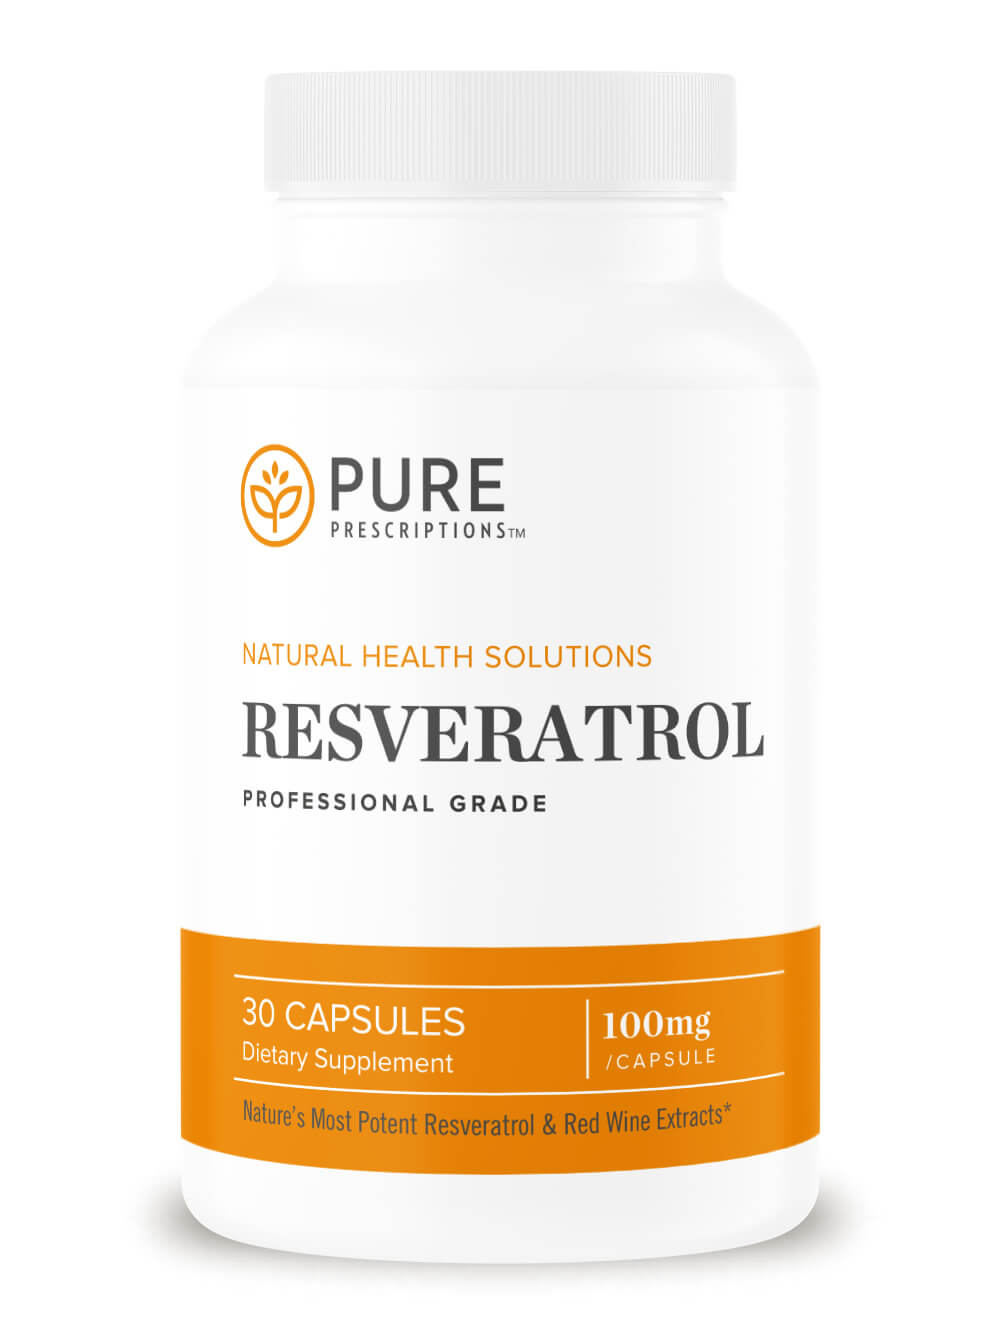 Resveratrol Formerly Purevinol 25 Pure Prescriptions